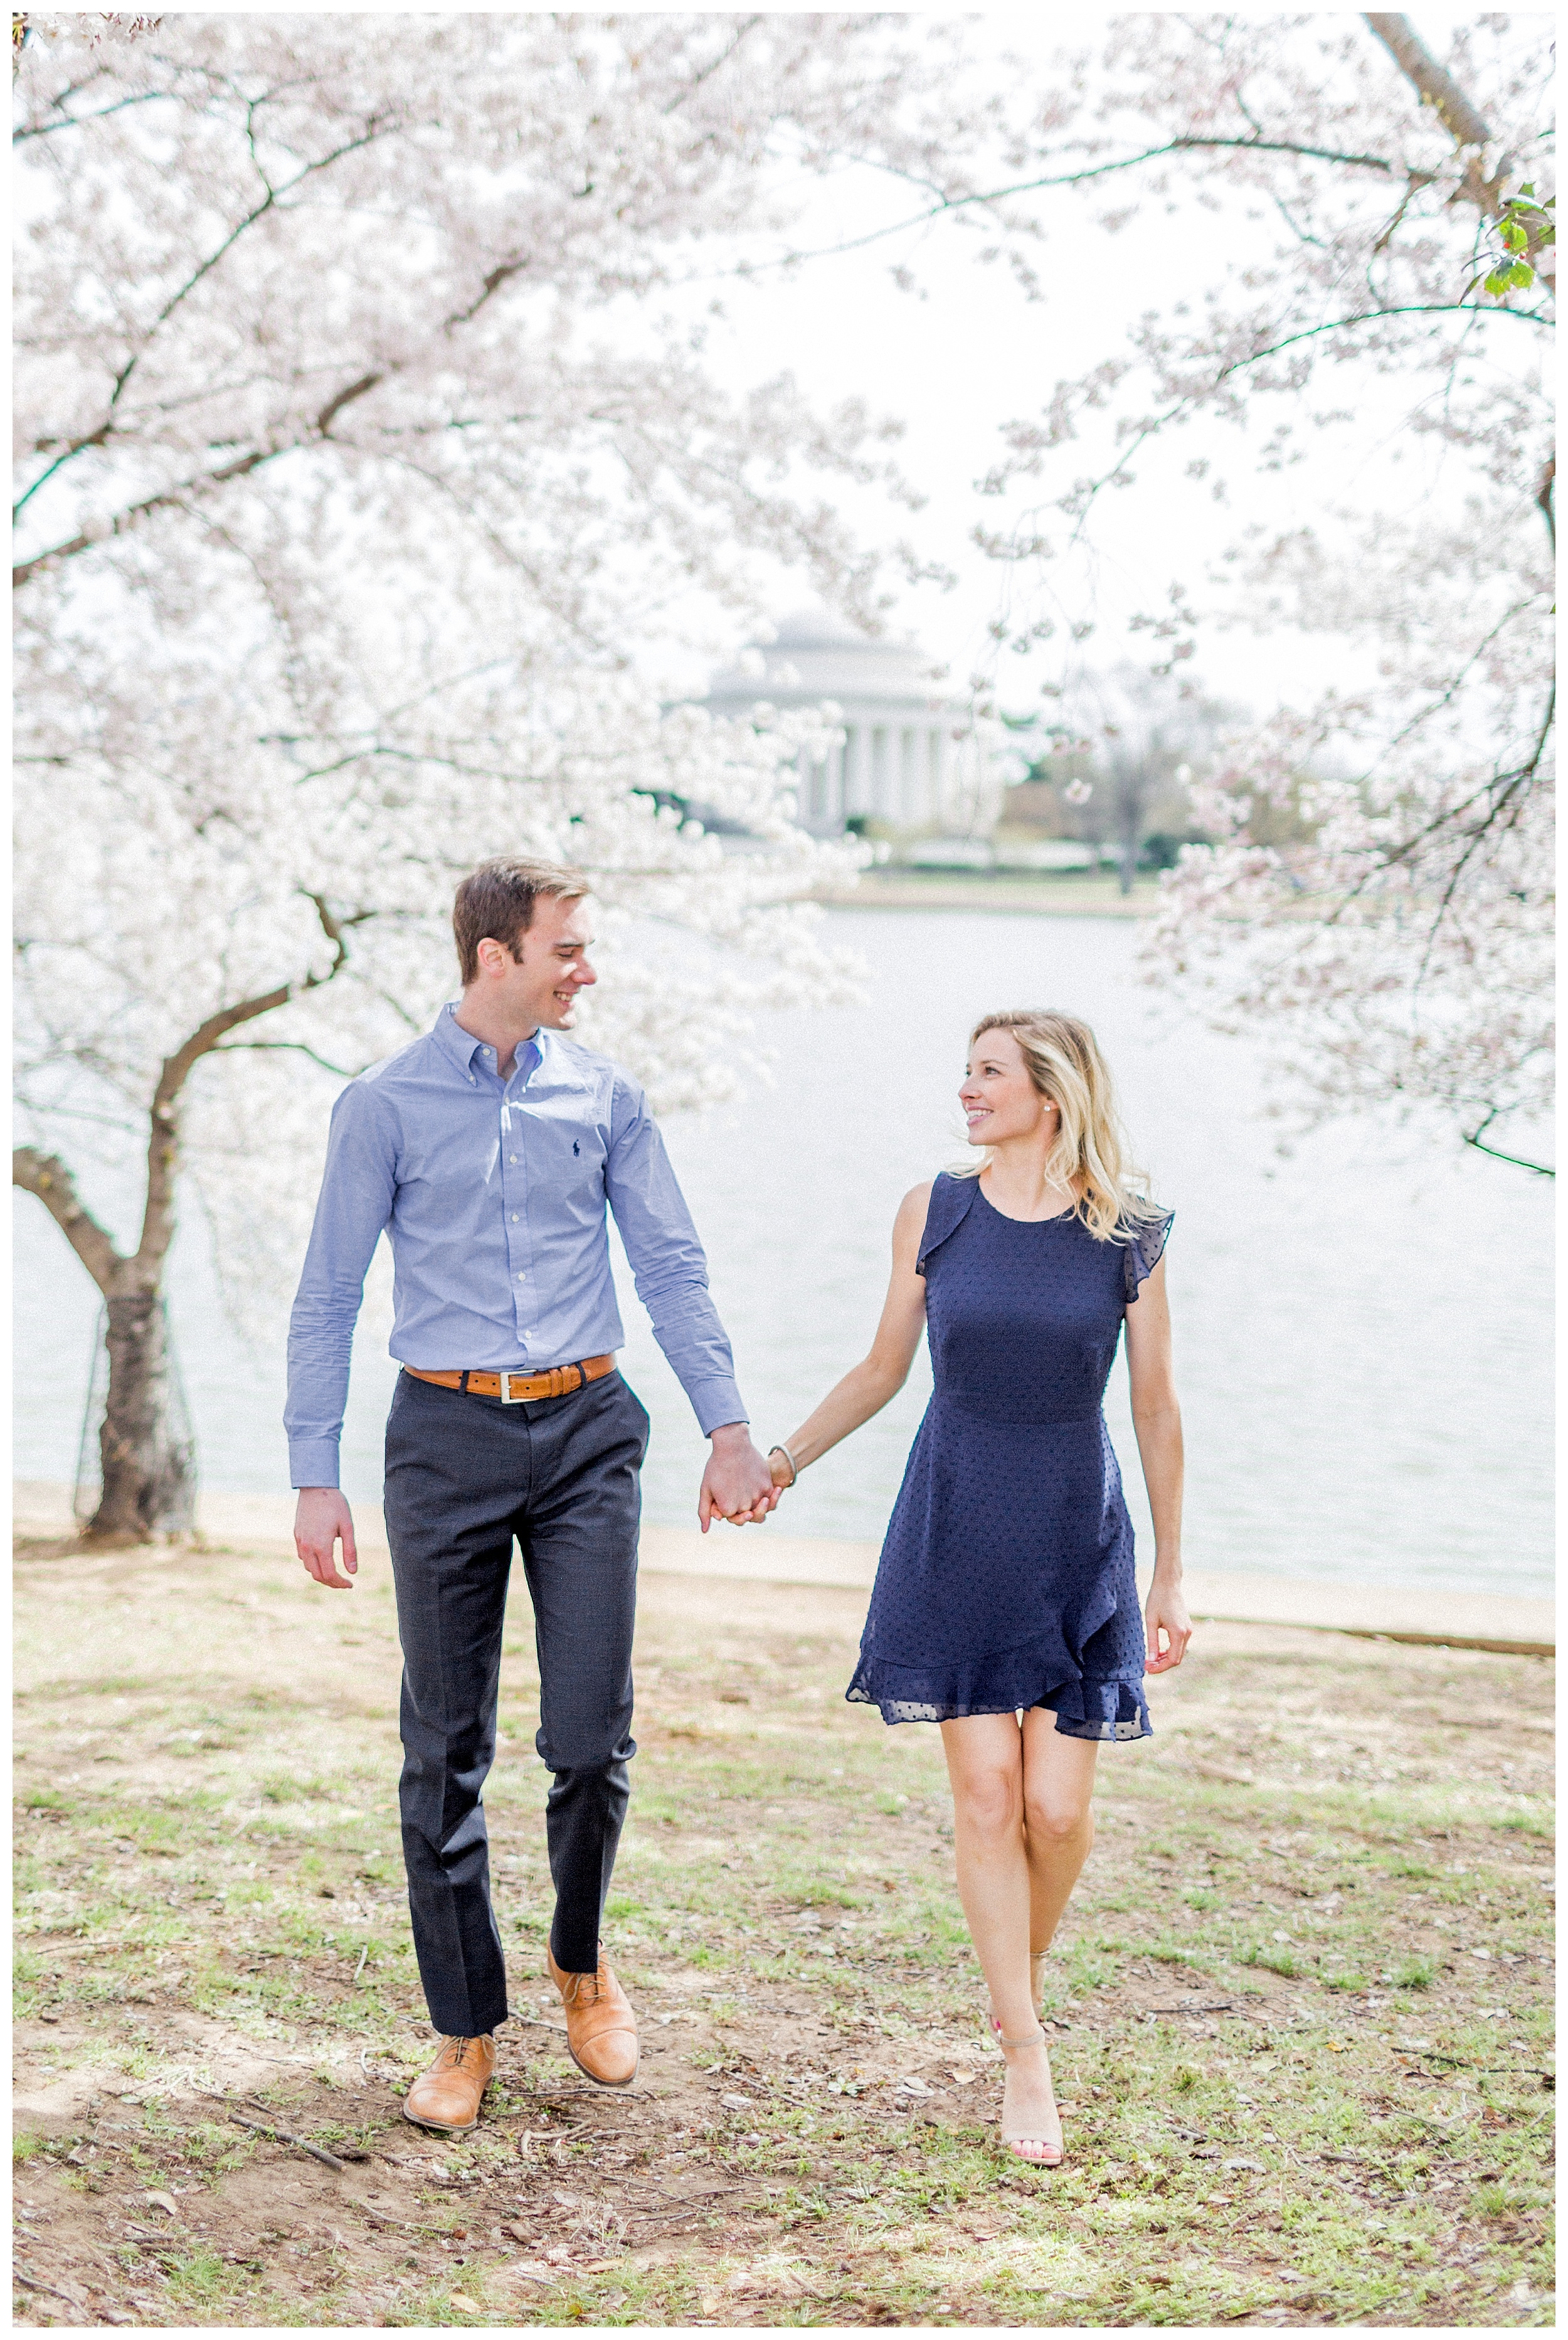 District of Columbia Cherry Blossom Engagement Session_0047.jpg